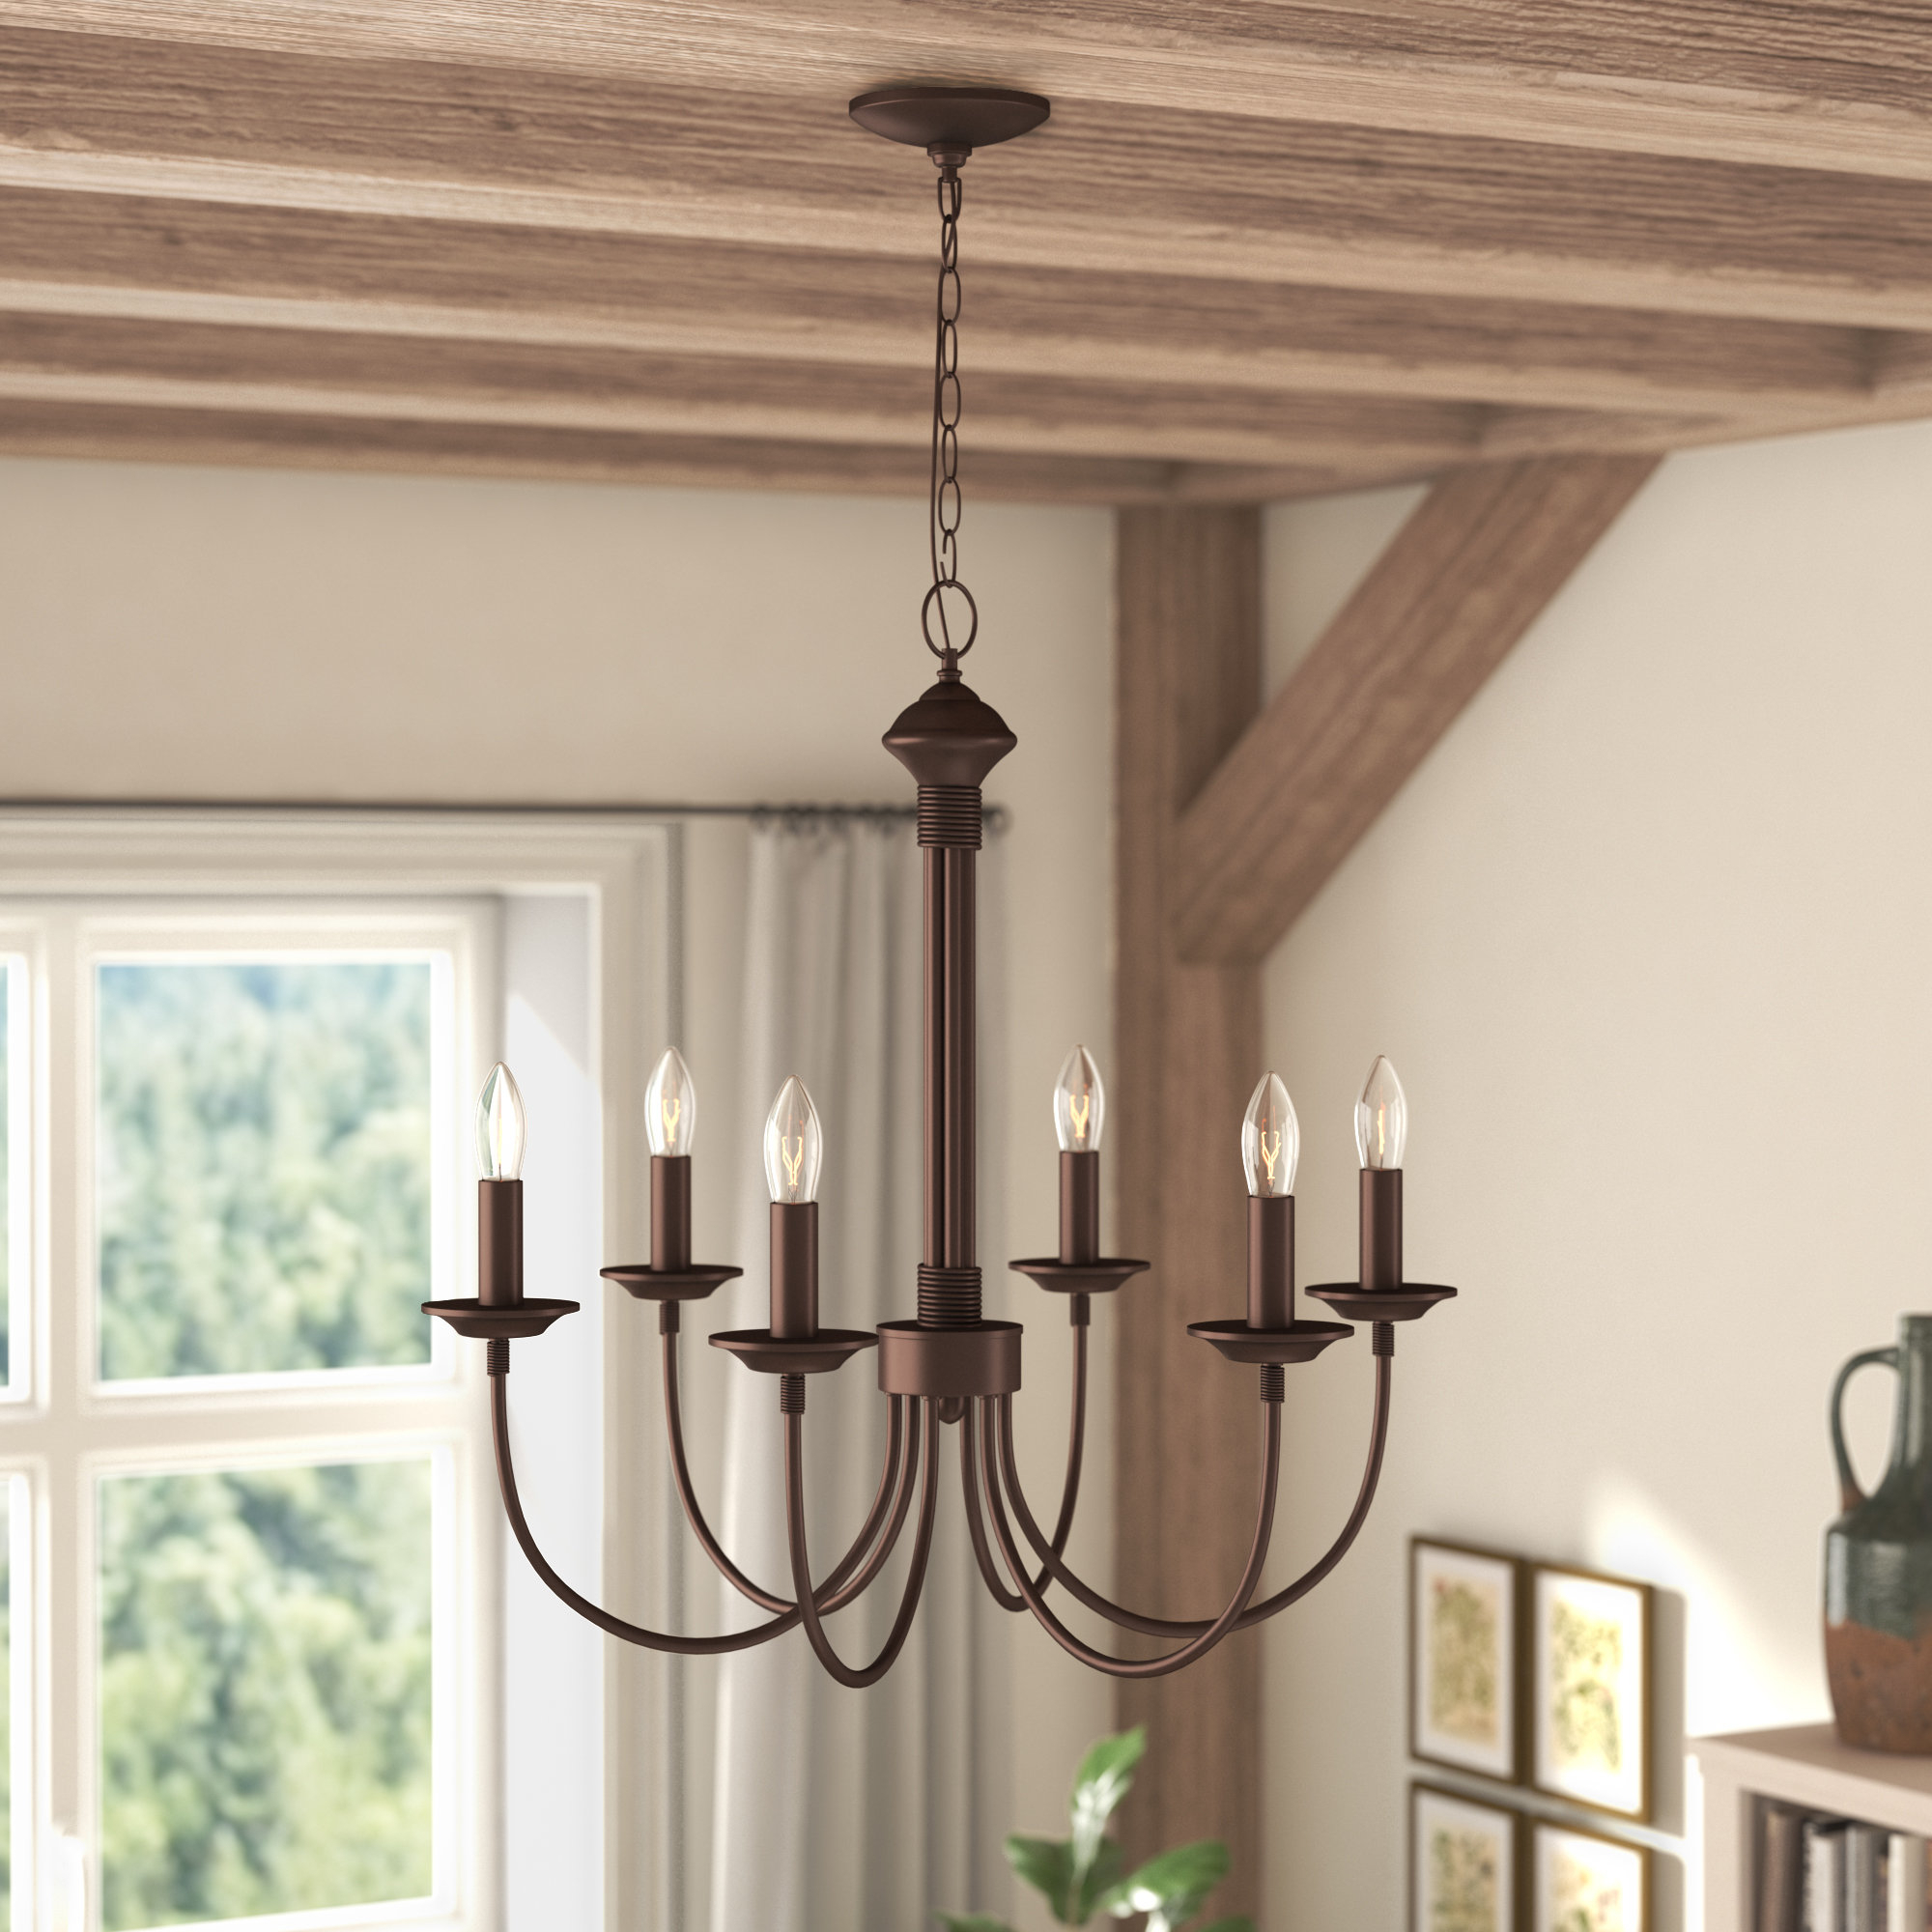 Laurel Foundry Modern Farmhouse Shaylee 6 Light Candle Style Chandelier For Shaylee 8 Light Candle Style Chandeliers (View 22 of 30)